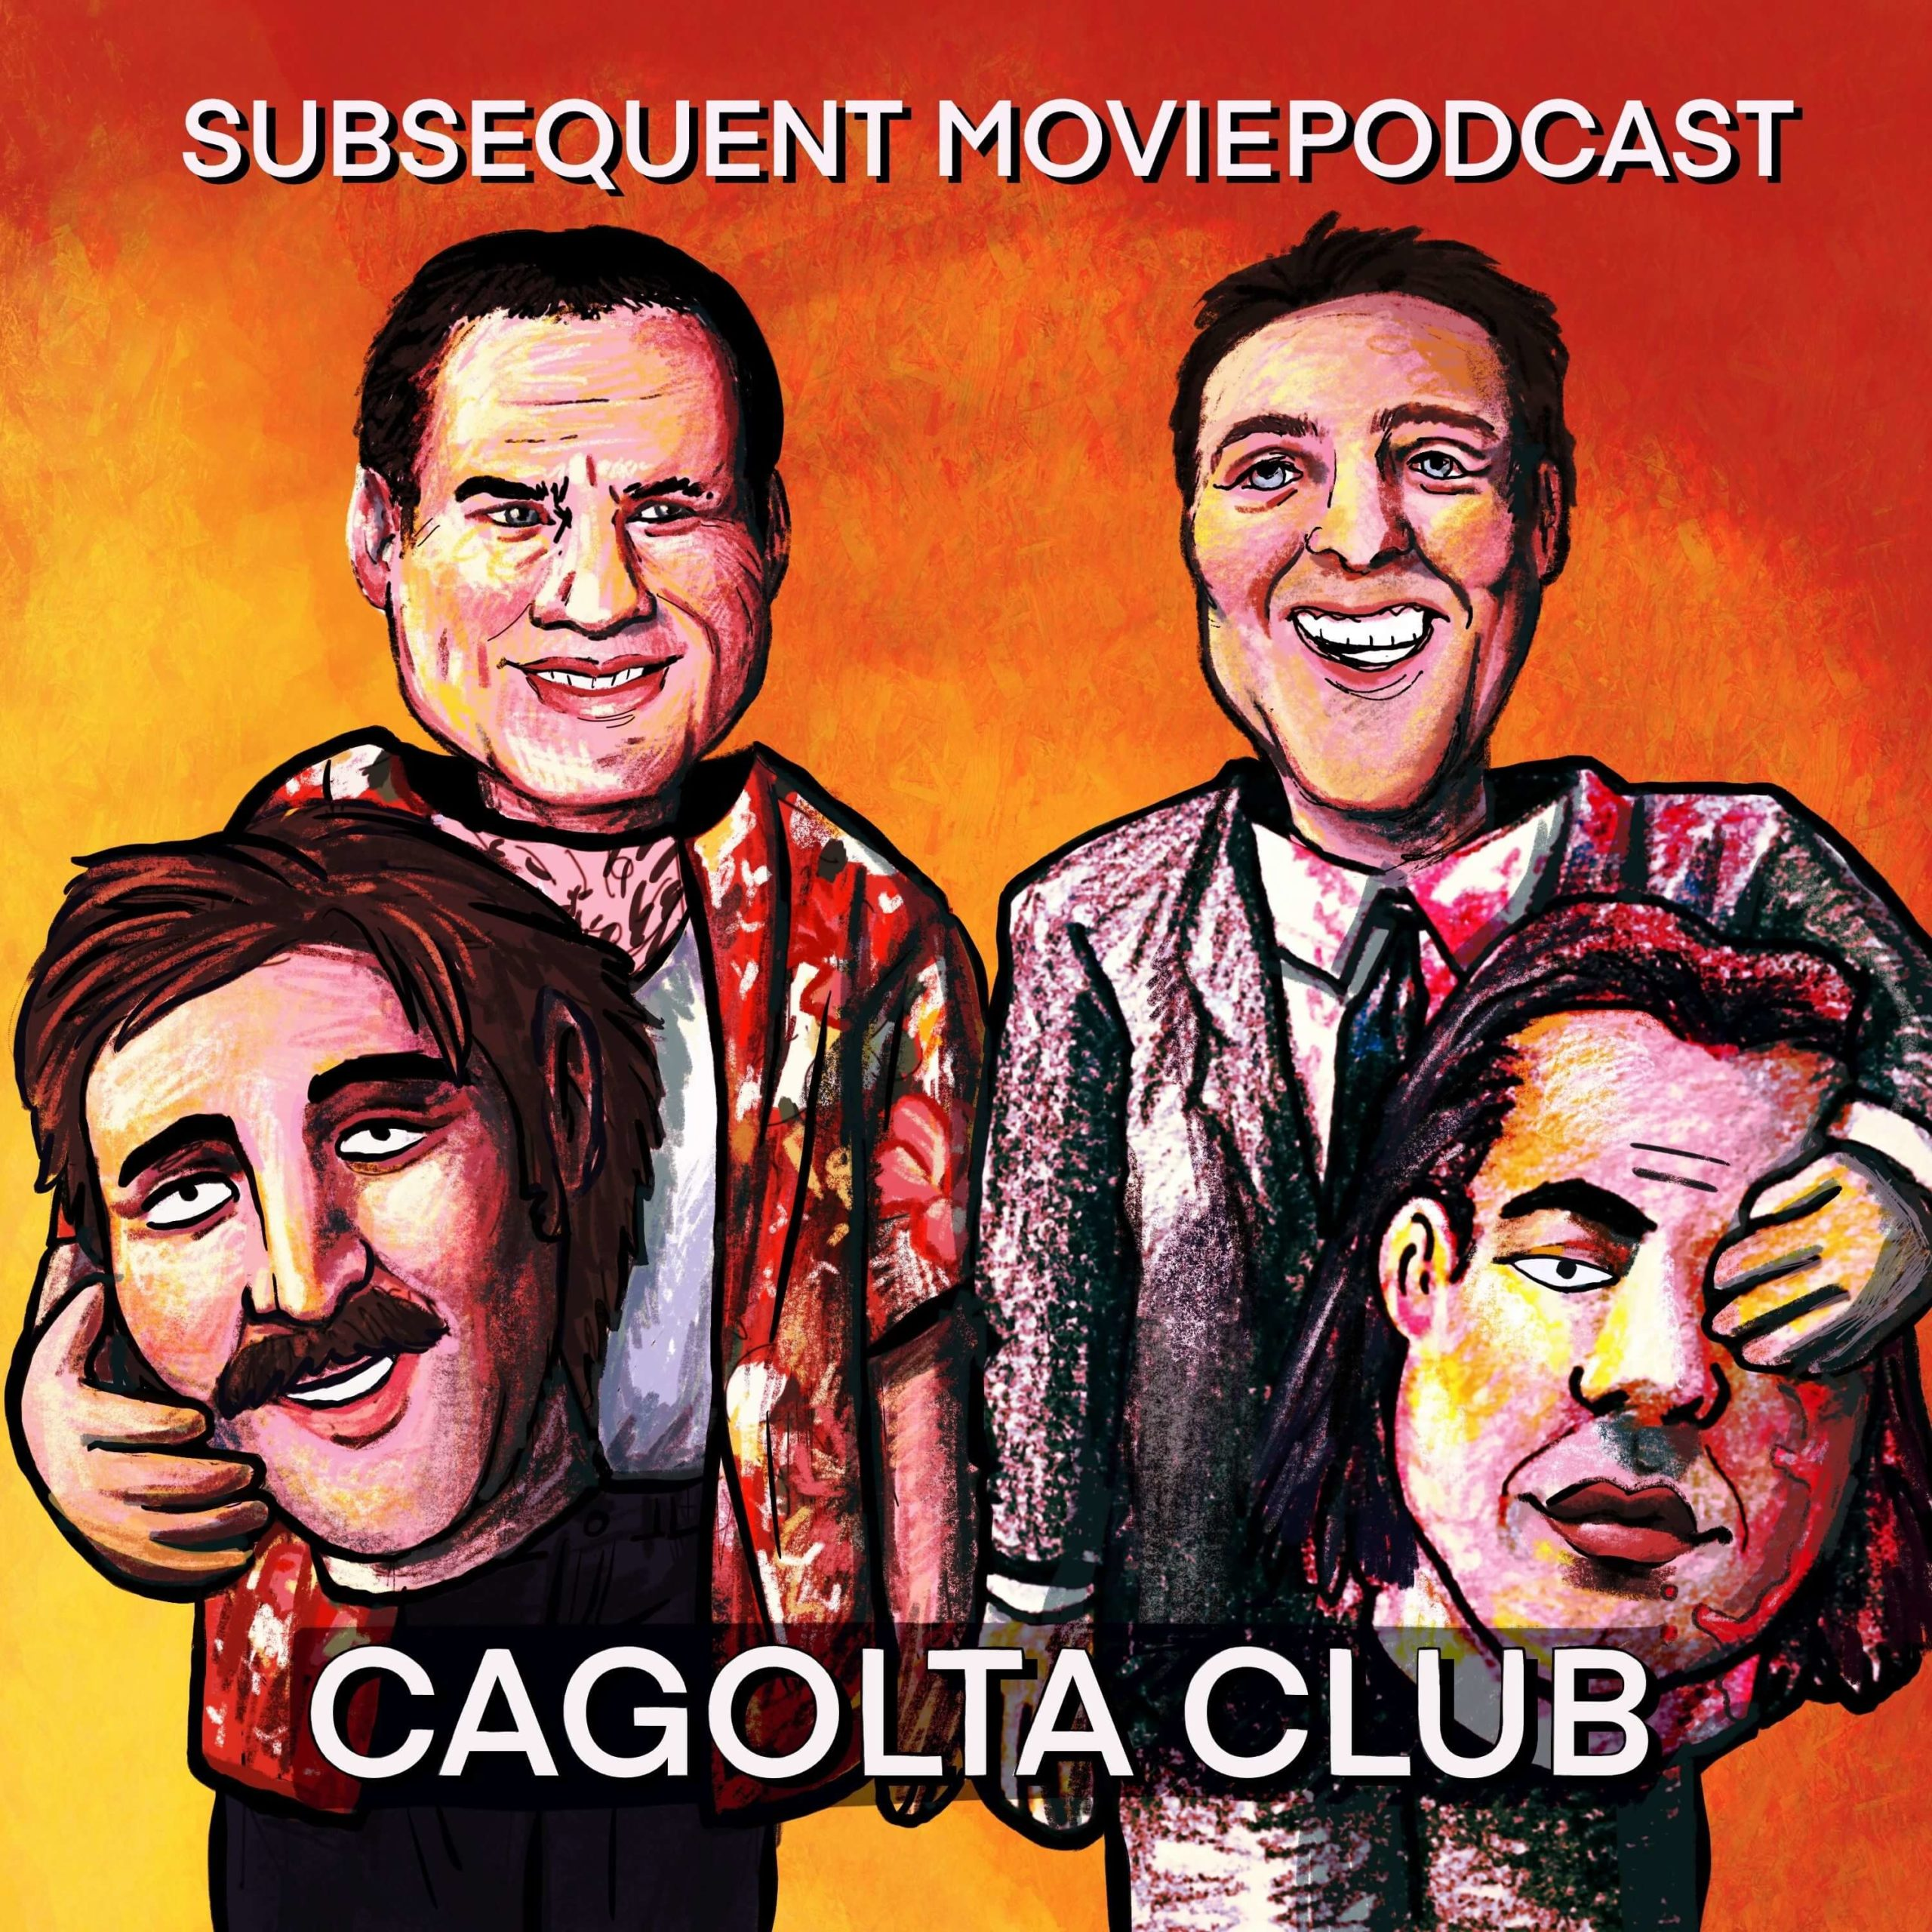 Subsequent Moviepodcast